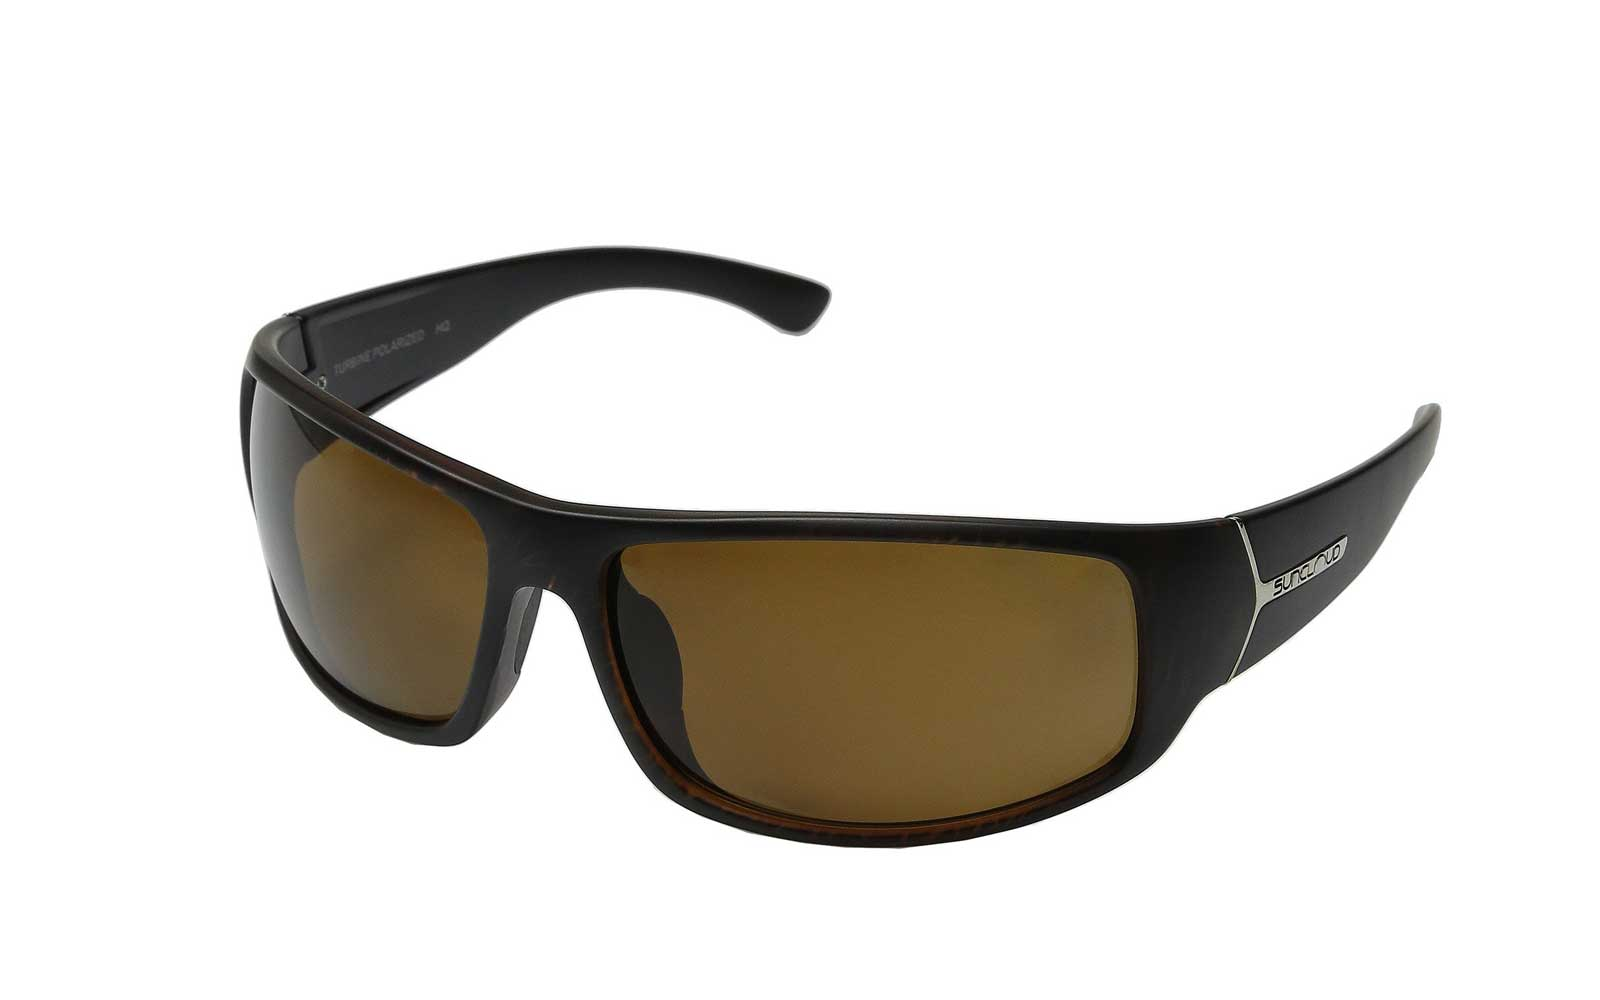 e58f4aa31c4 The Best Sunglasses to Travel With